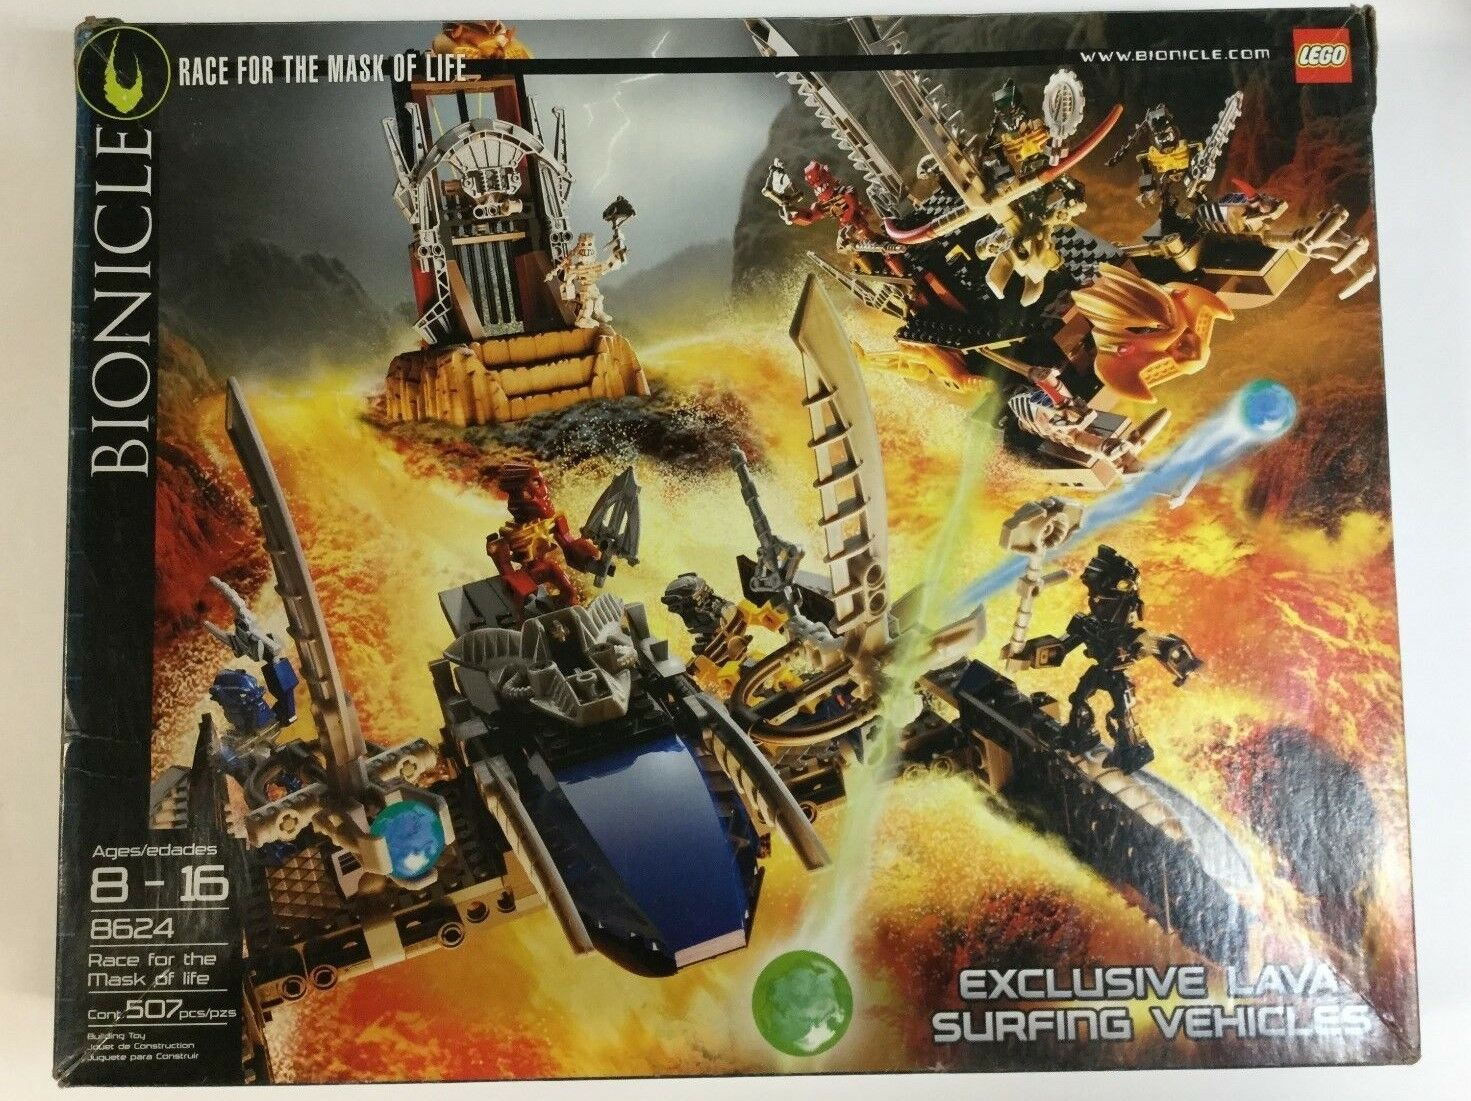 LEGO Bionicle  8624  Race for the Mask of Life  100% with  instructions and box